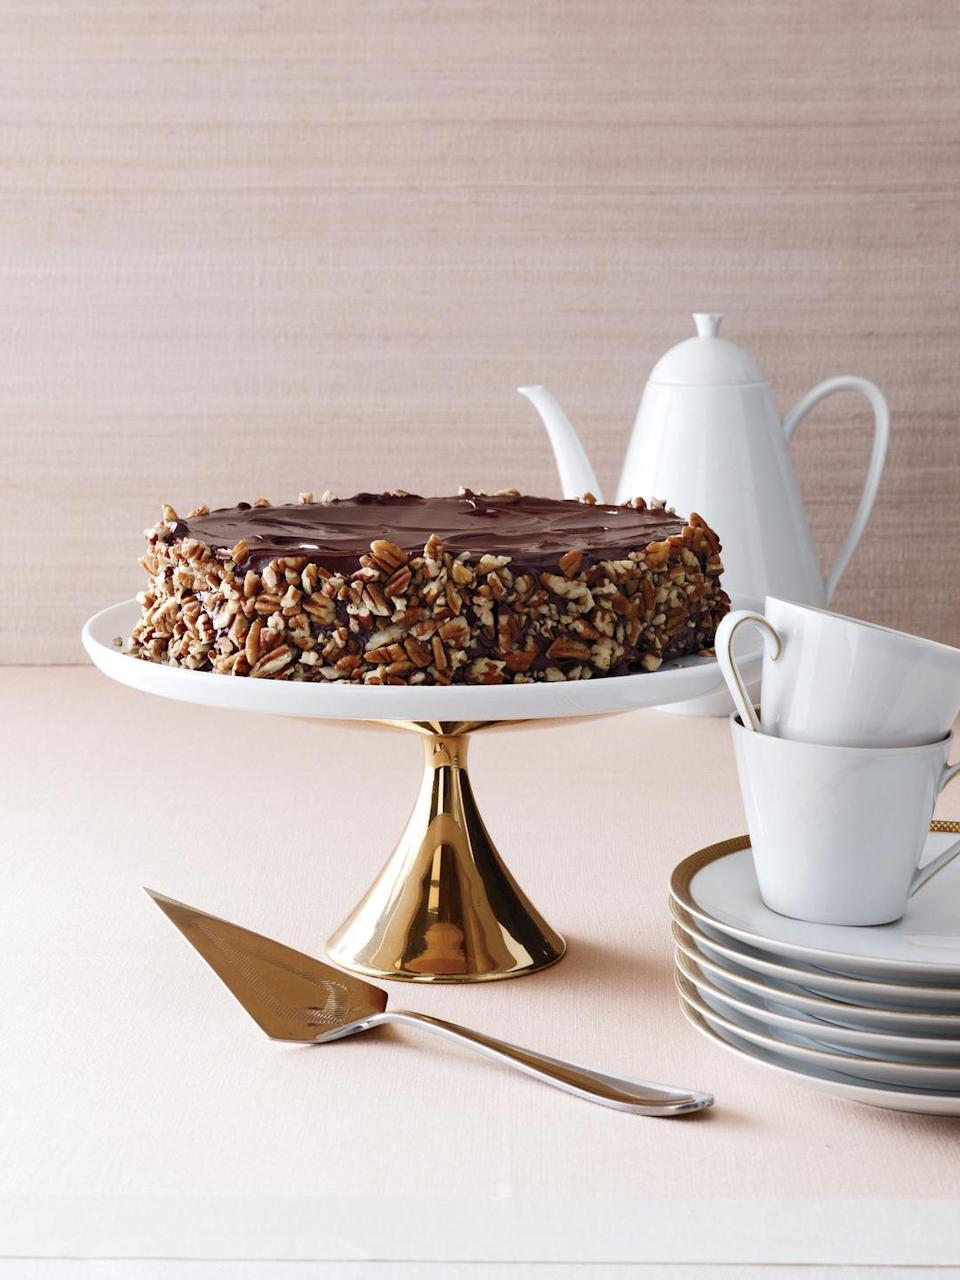 """<p>A touch of espresso in this decadent cake really amps up the chocolate flavor. Try it!</p><p><em><a href=""""https://www.womansday.com/food-recipes/food-drinks/recipes/a11808/flourless-chocolate-cake-recipe-122900/"""" rel=""""nofollow noopener"""" target=""""_blank"""" data-ylk=""""slk:Get the recipe from Woman's Day »"""" class=""""link rapid-noclick-resp"""">Get the recipe from Woman's Day »</a></em></p>"""